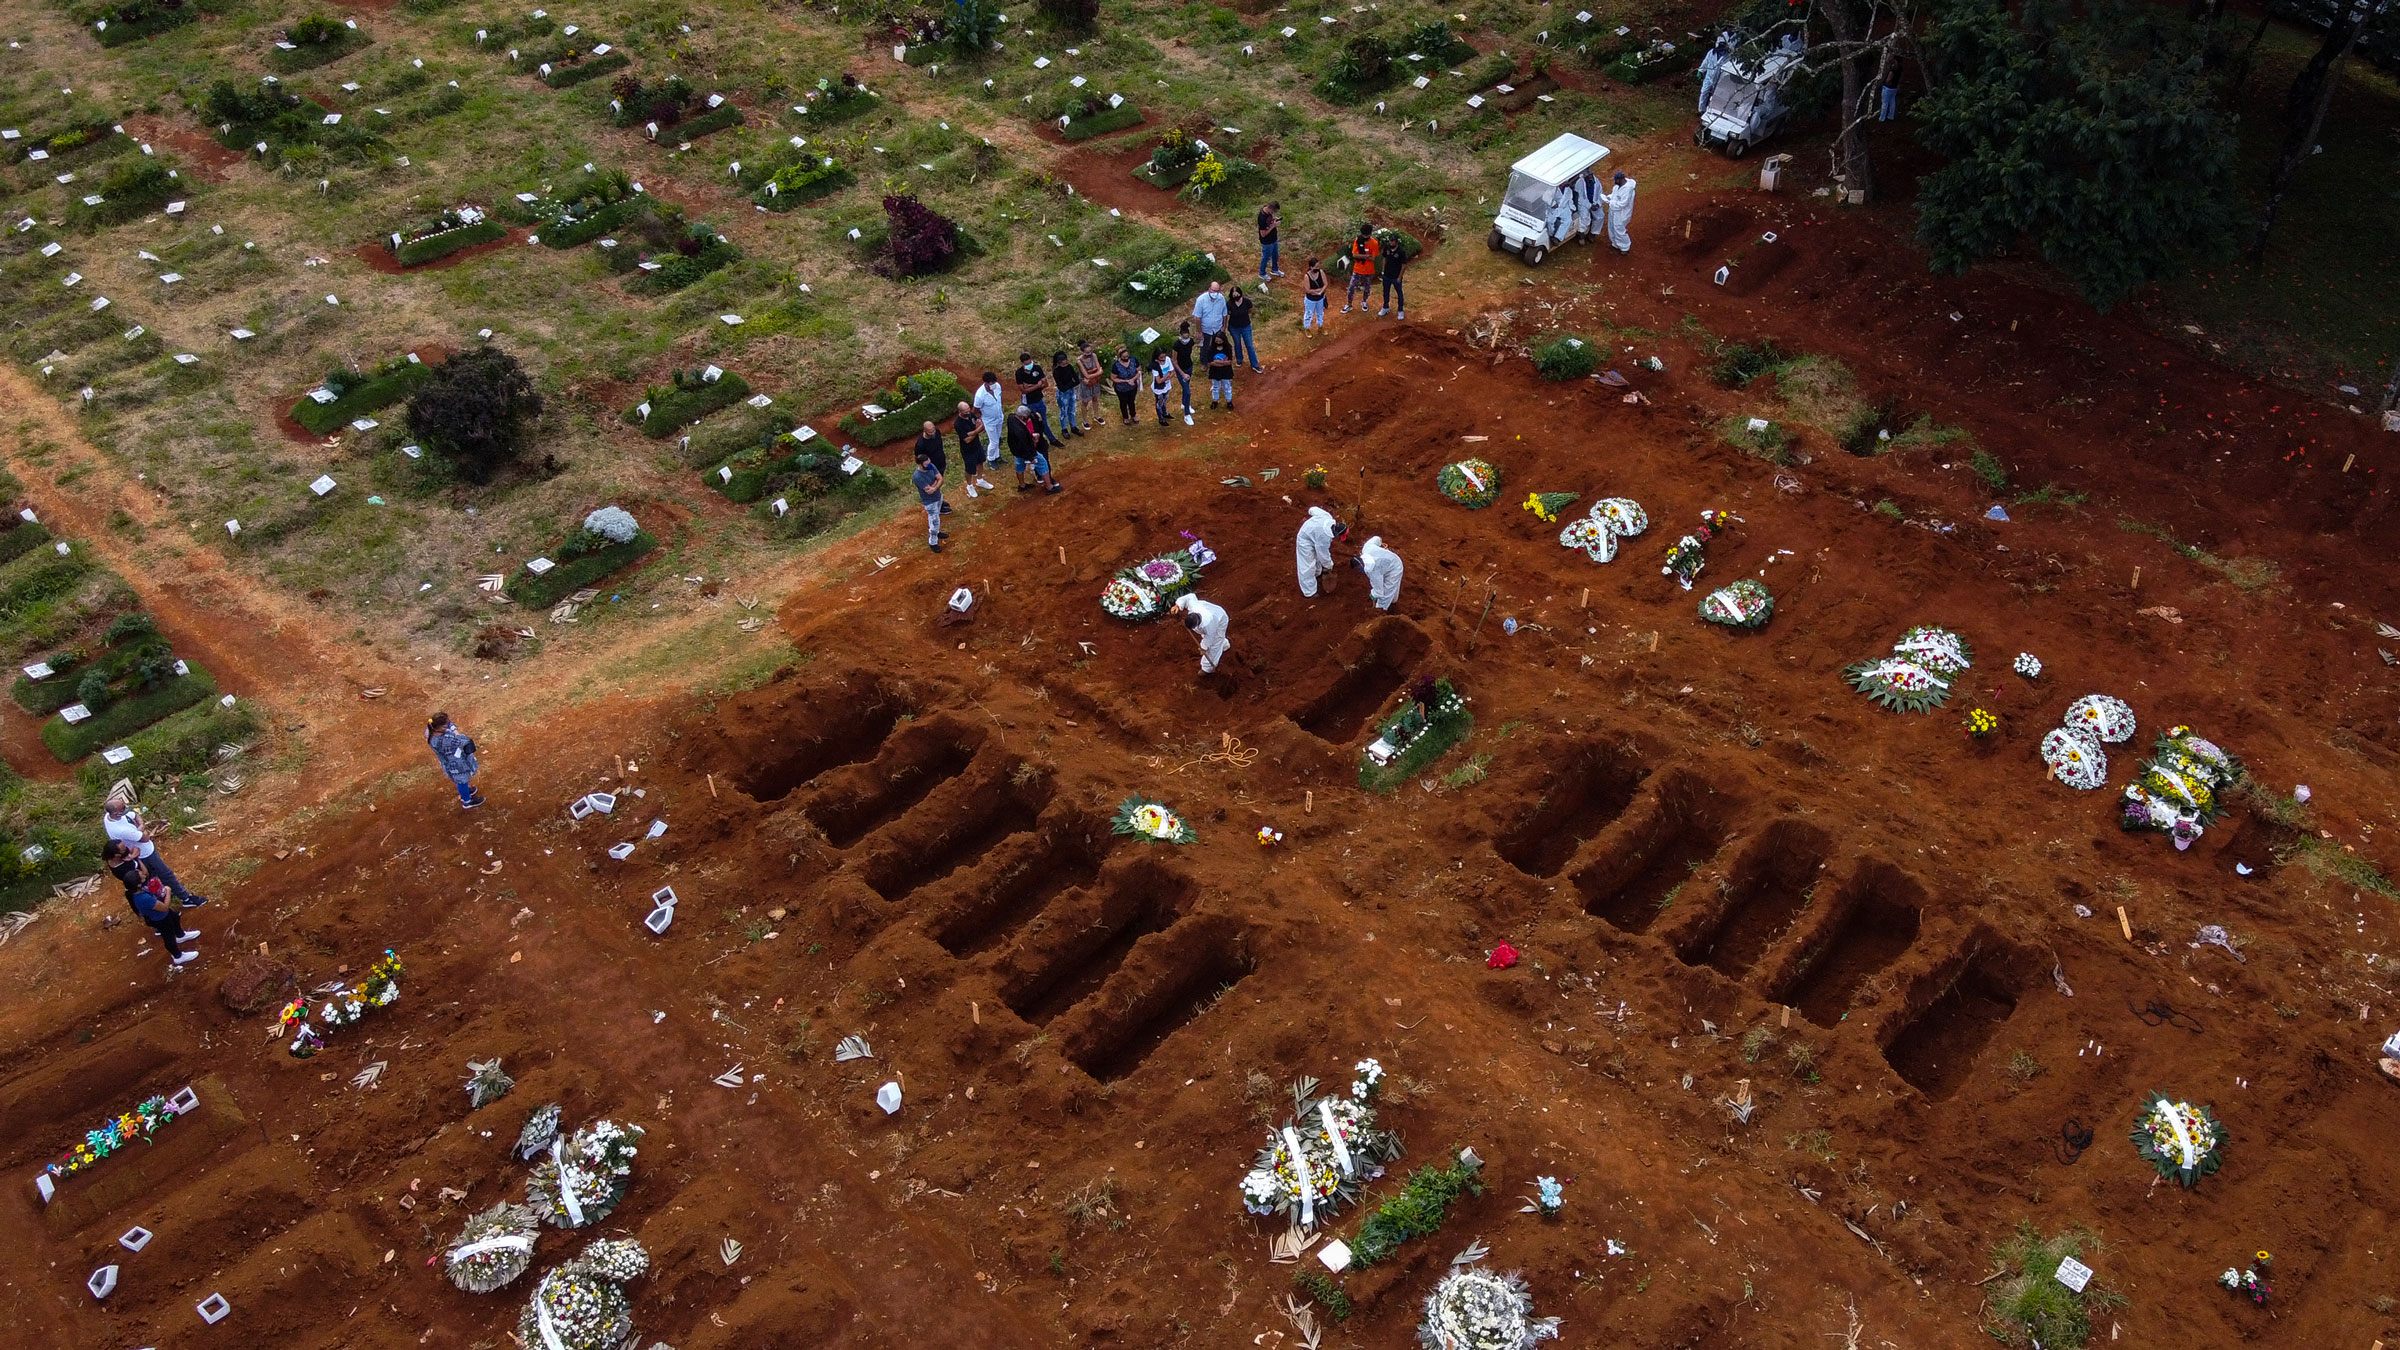 Open graves are seen at the Vila Formosa Cemetery in São Paulo, Brazil, on Friday. Vila Formosa, the biggest graveyard in Latin America, has seen its activity grow in the last few weeks due to the surge of deaths related to Covid-19.